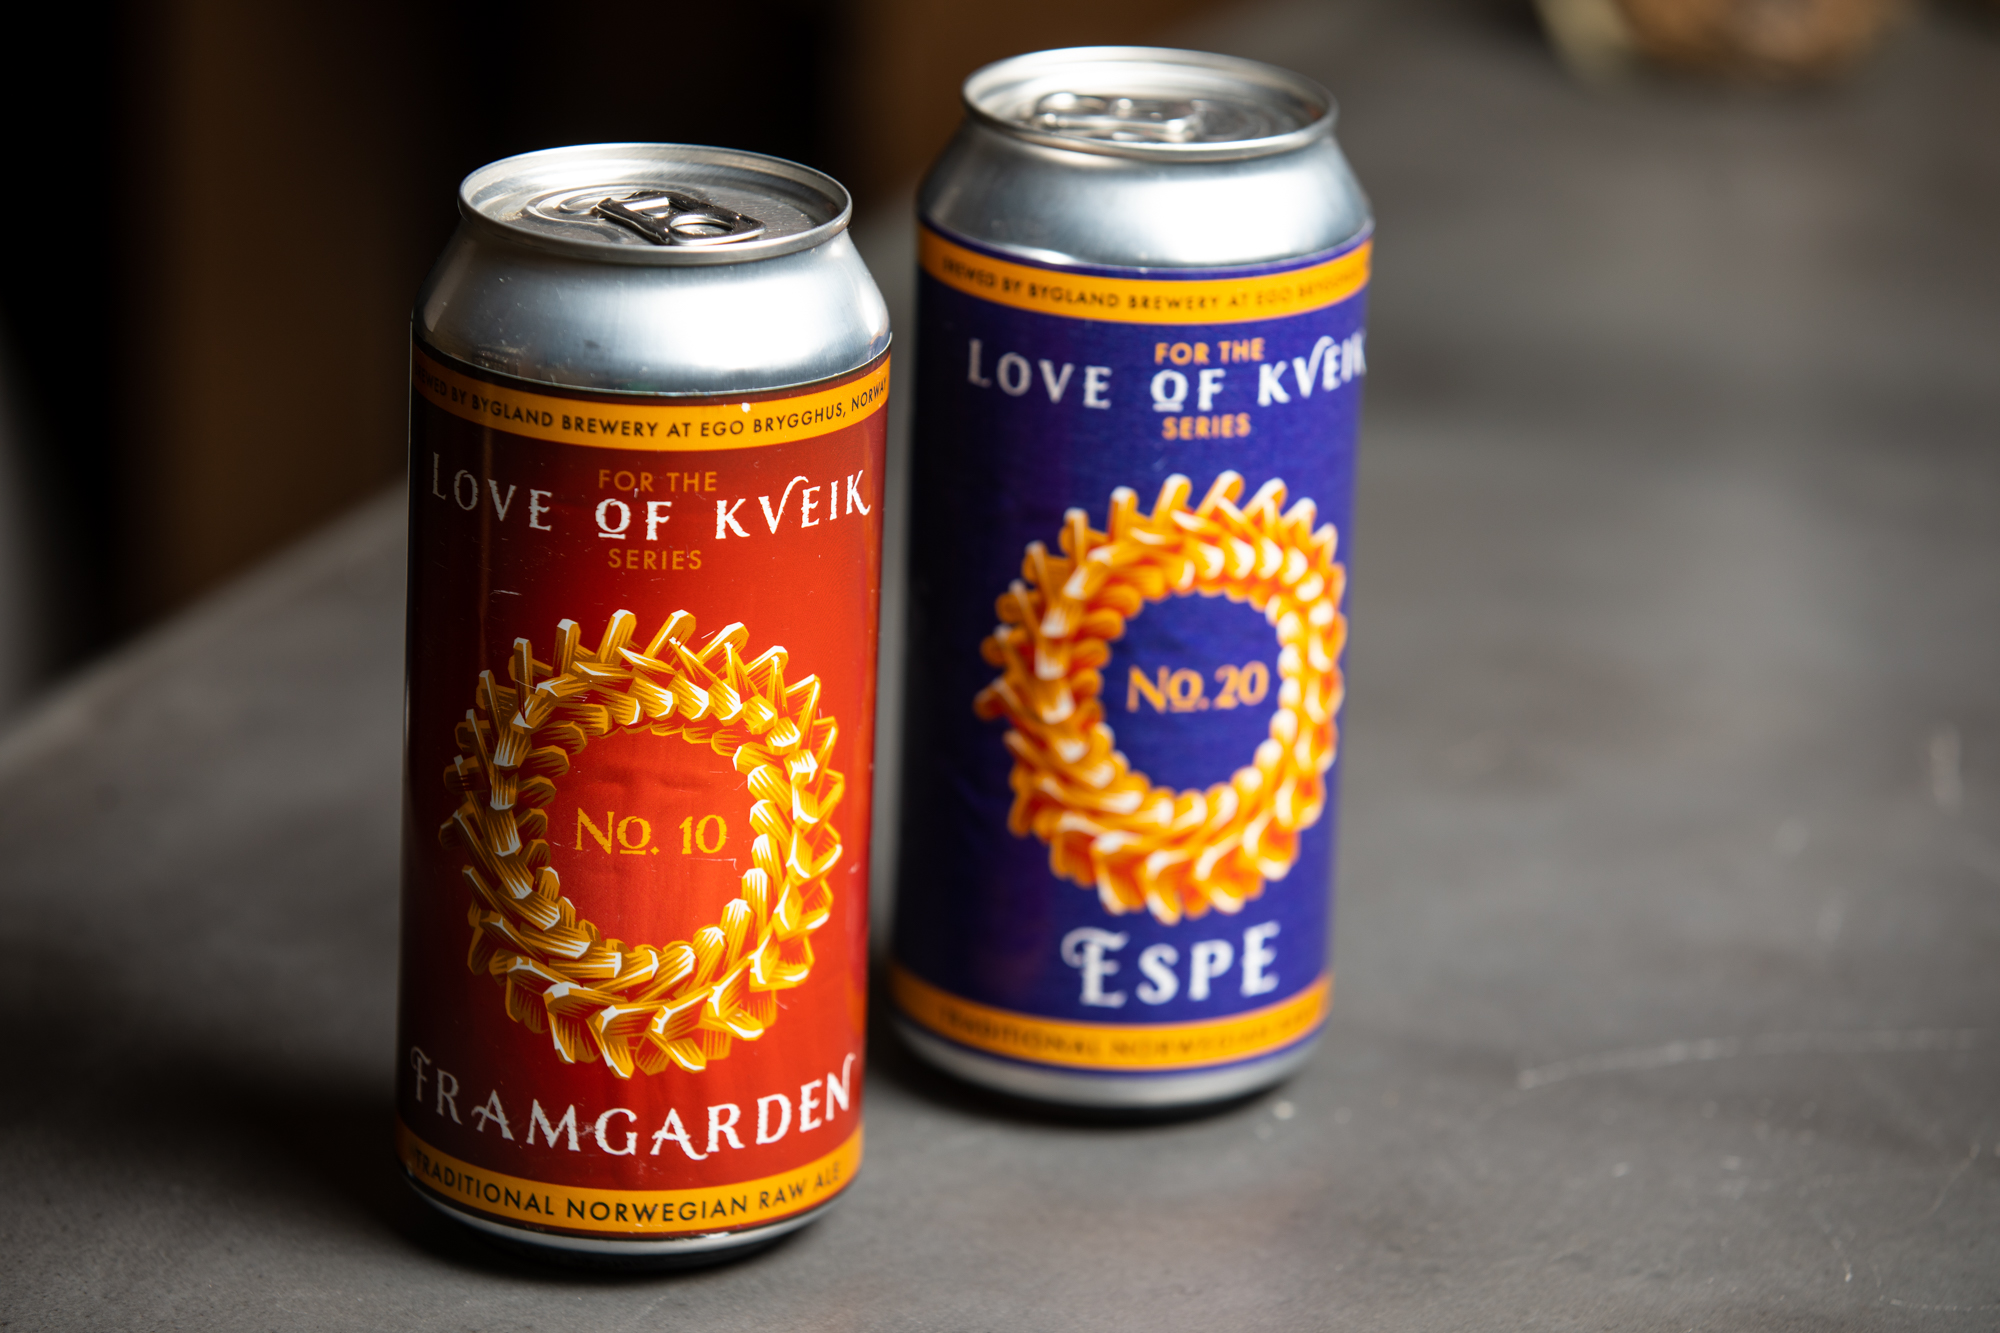 Two Norwegian farmhouse-style beers from Norway using kveik // Photo by Tj Turner, beer courtesy Chip Walton, Chop & Brew